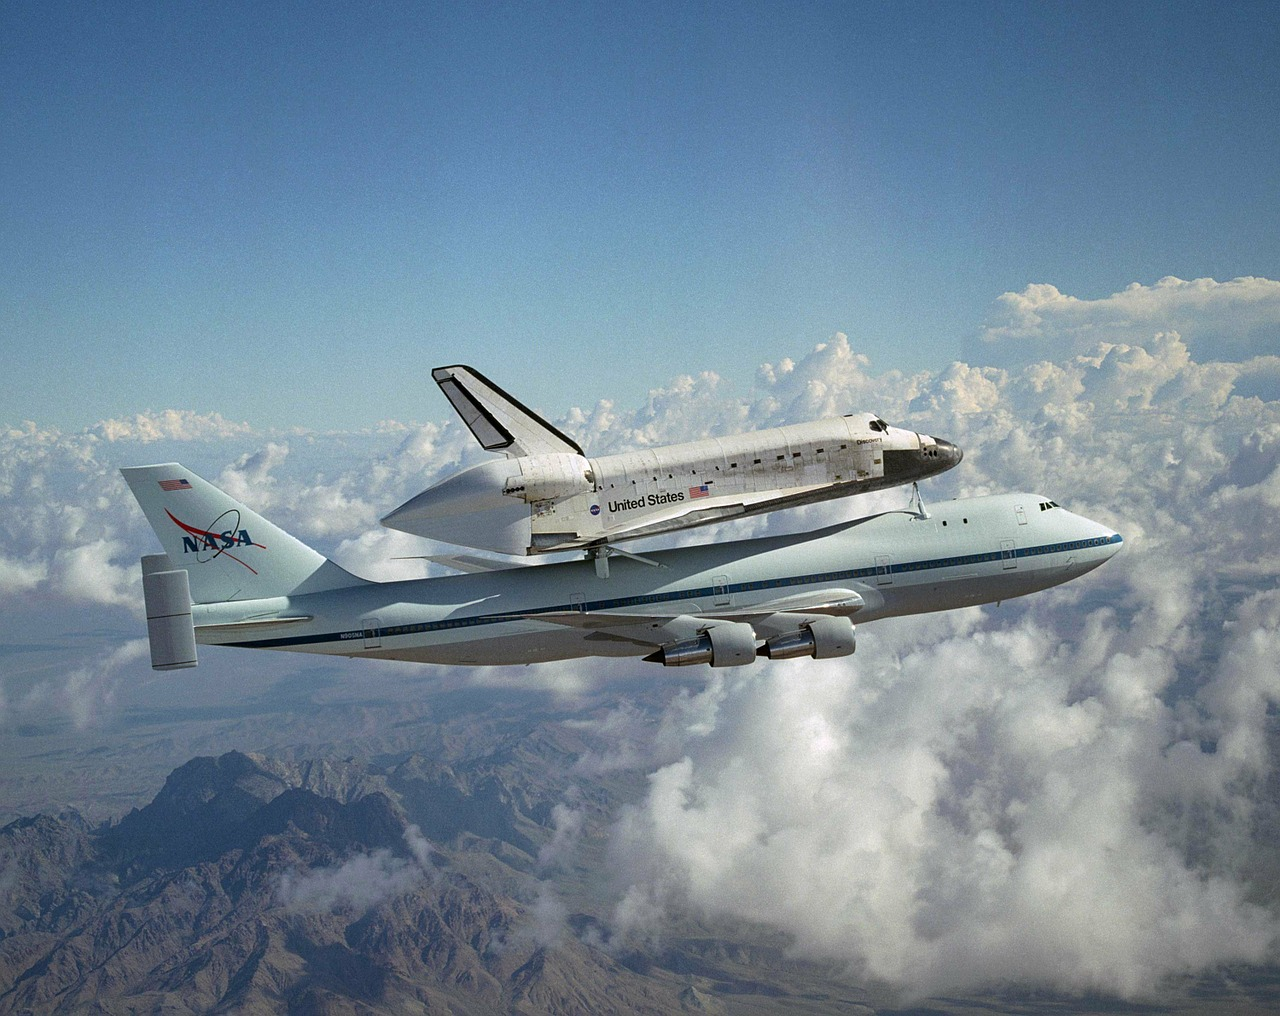 space shuttle nasa aerospace free photo